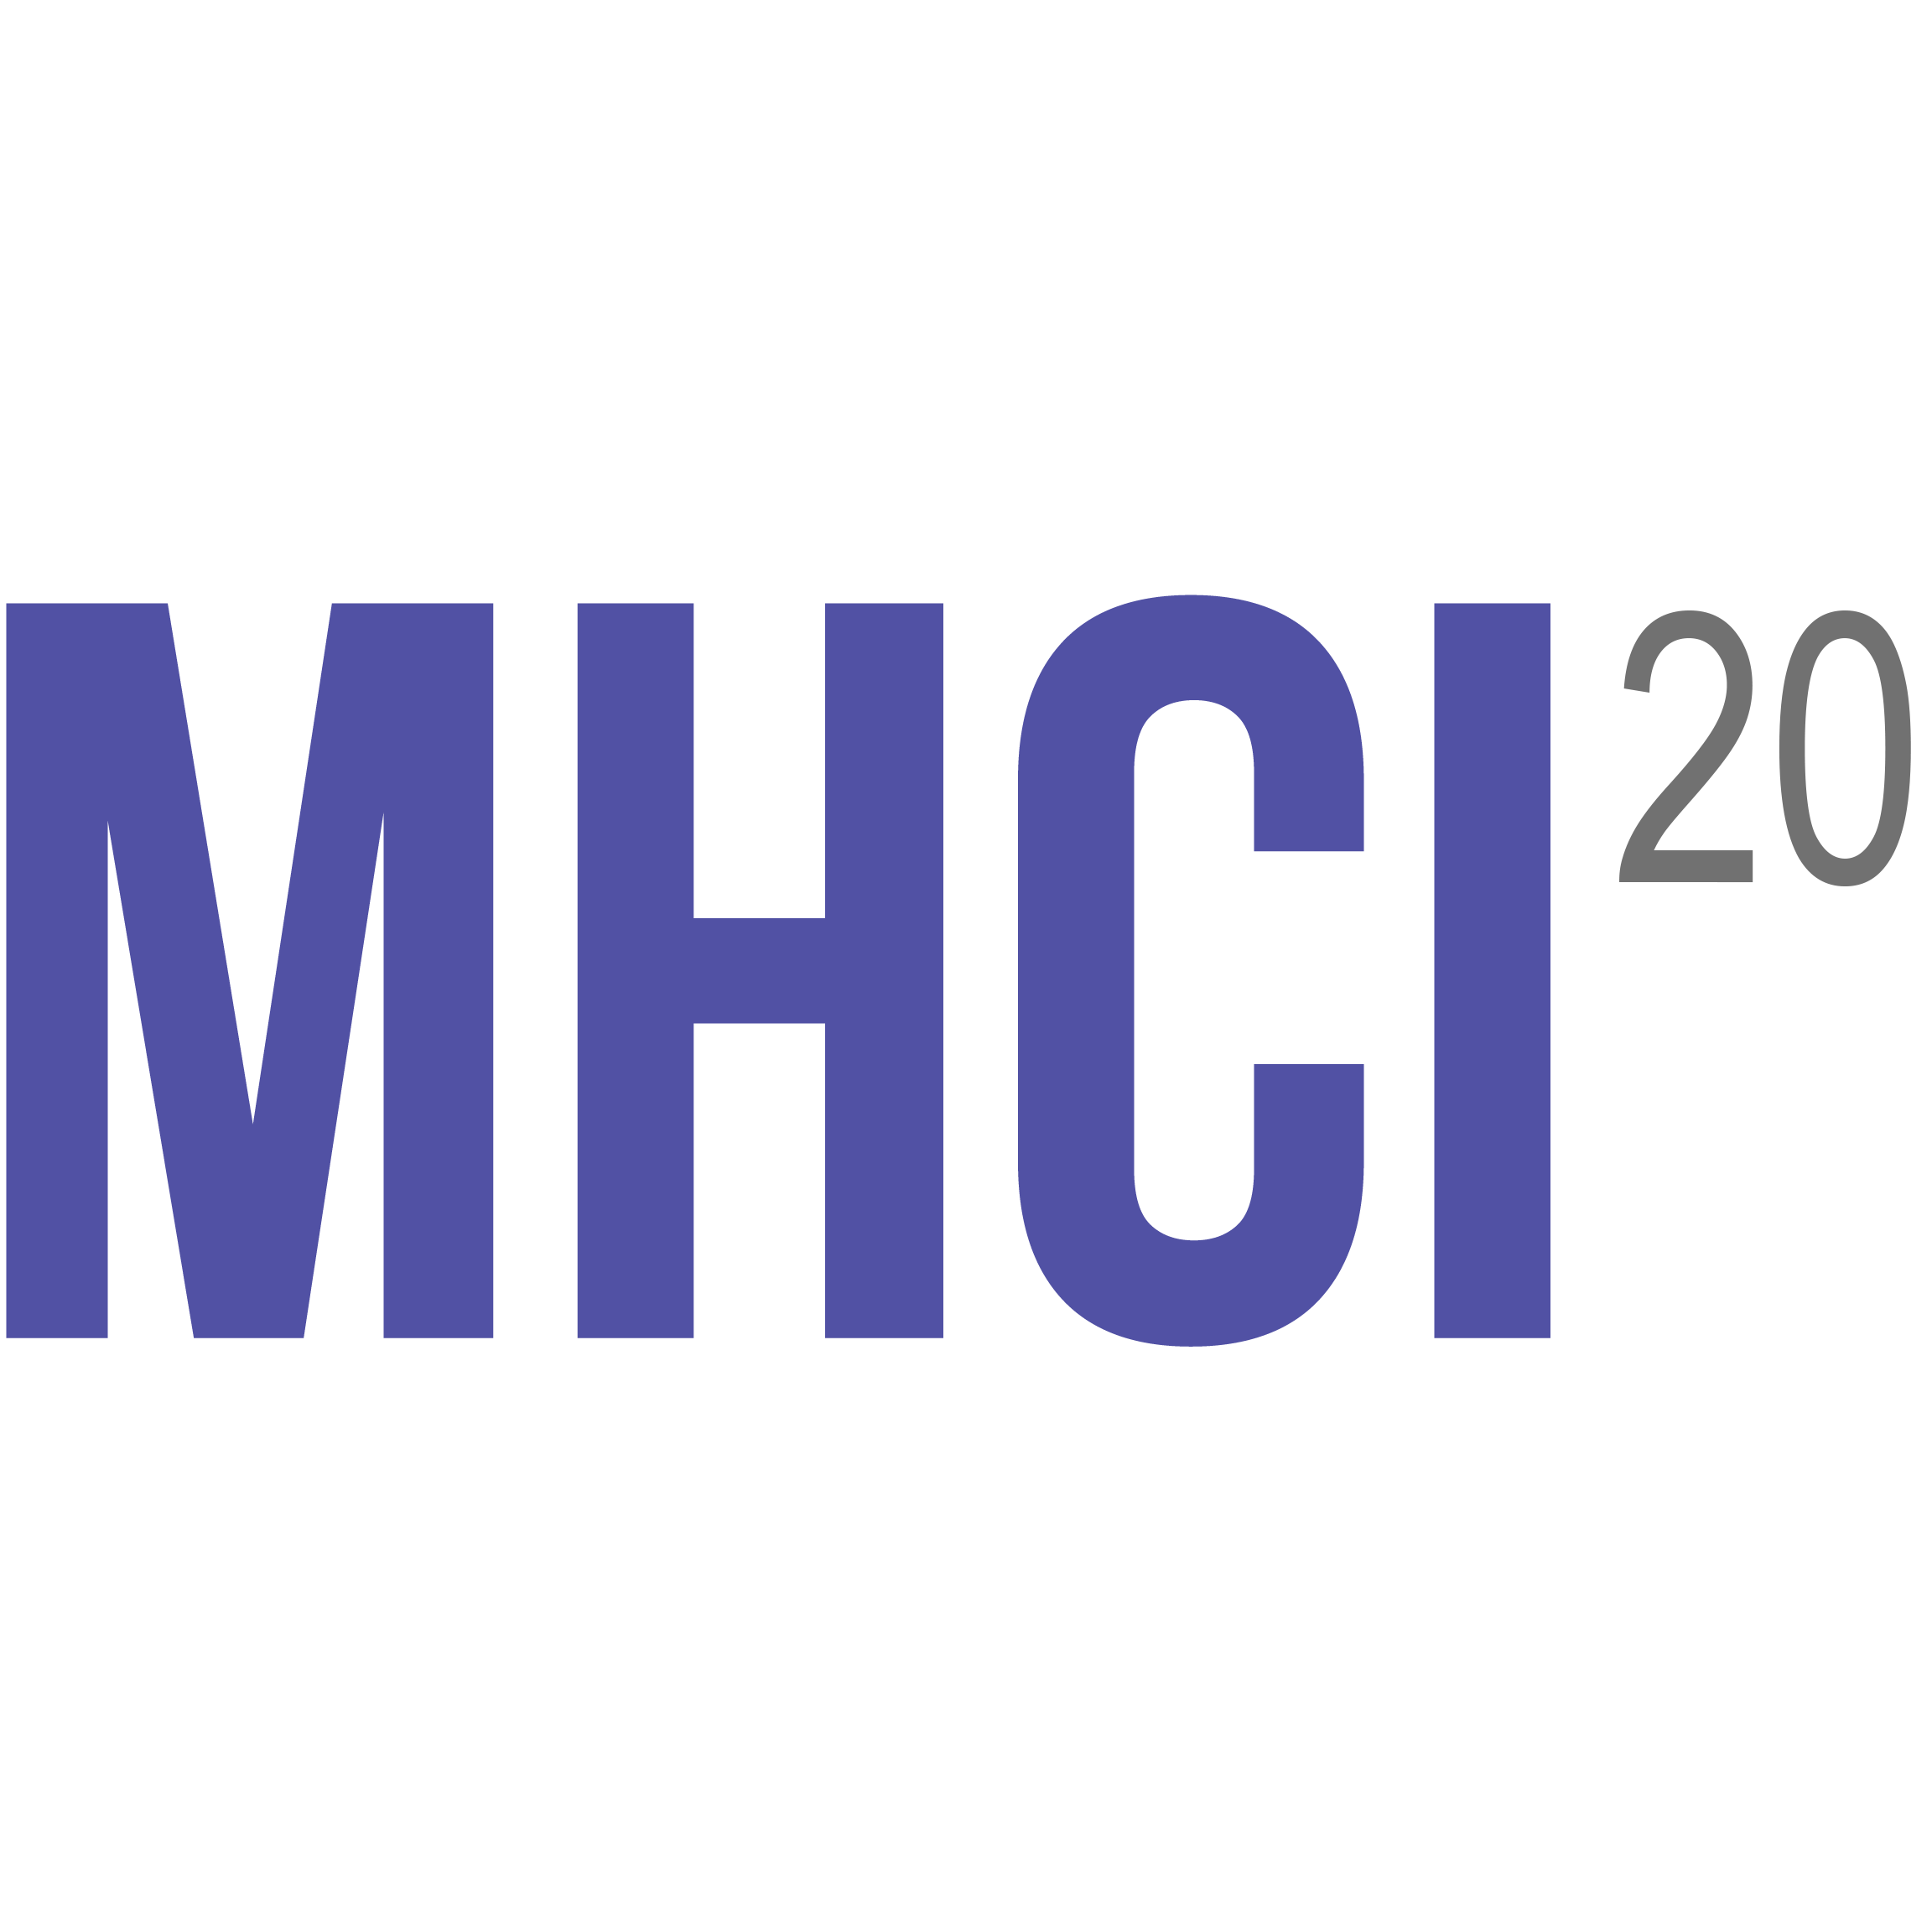 7th International Conference on Multimedia and Human-Computer Interaction (MHCI'20)